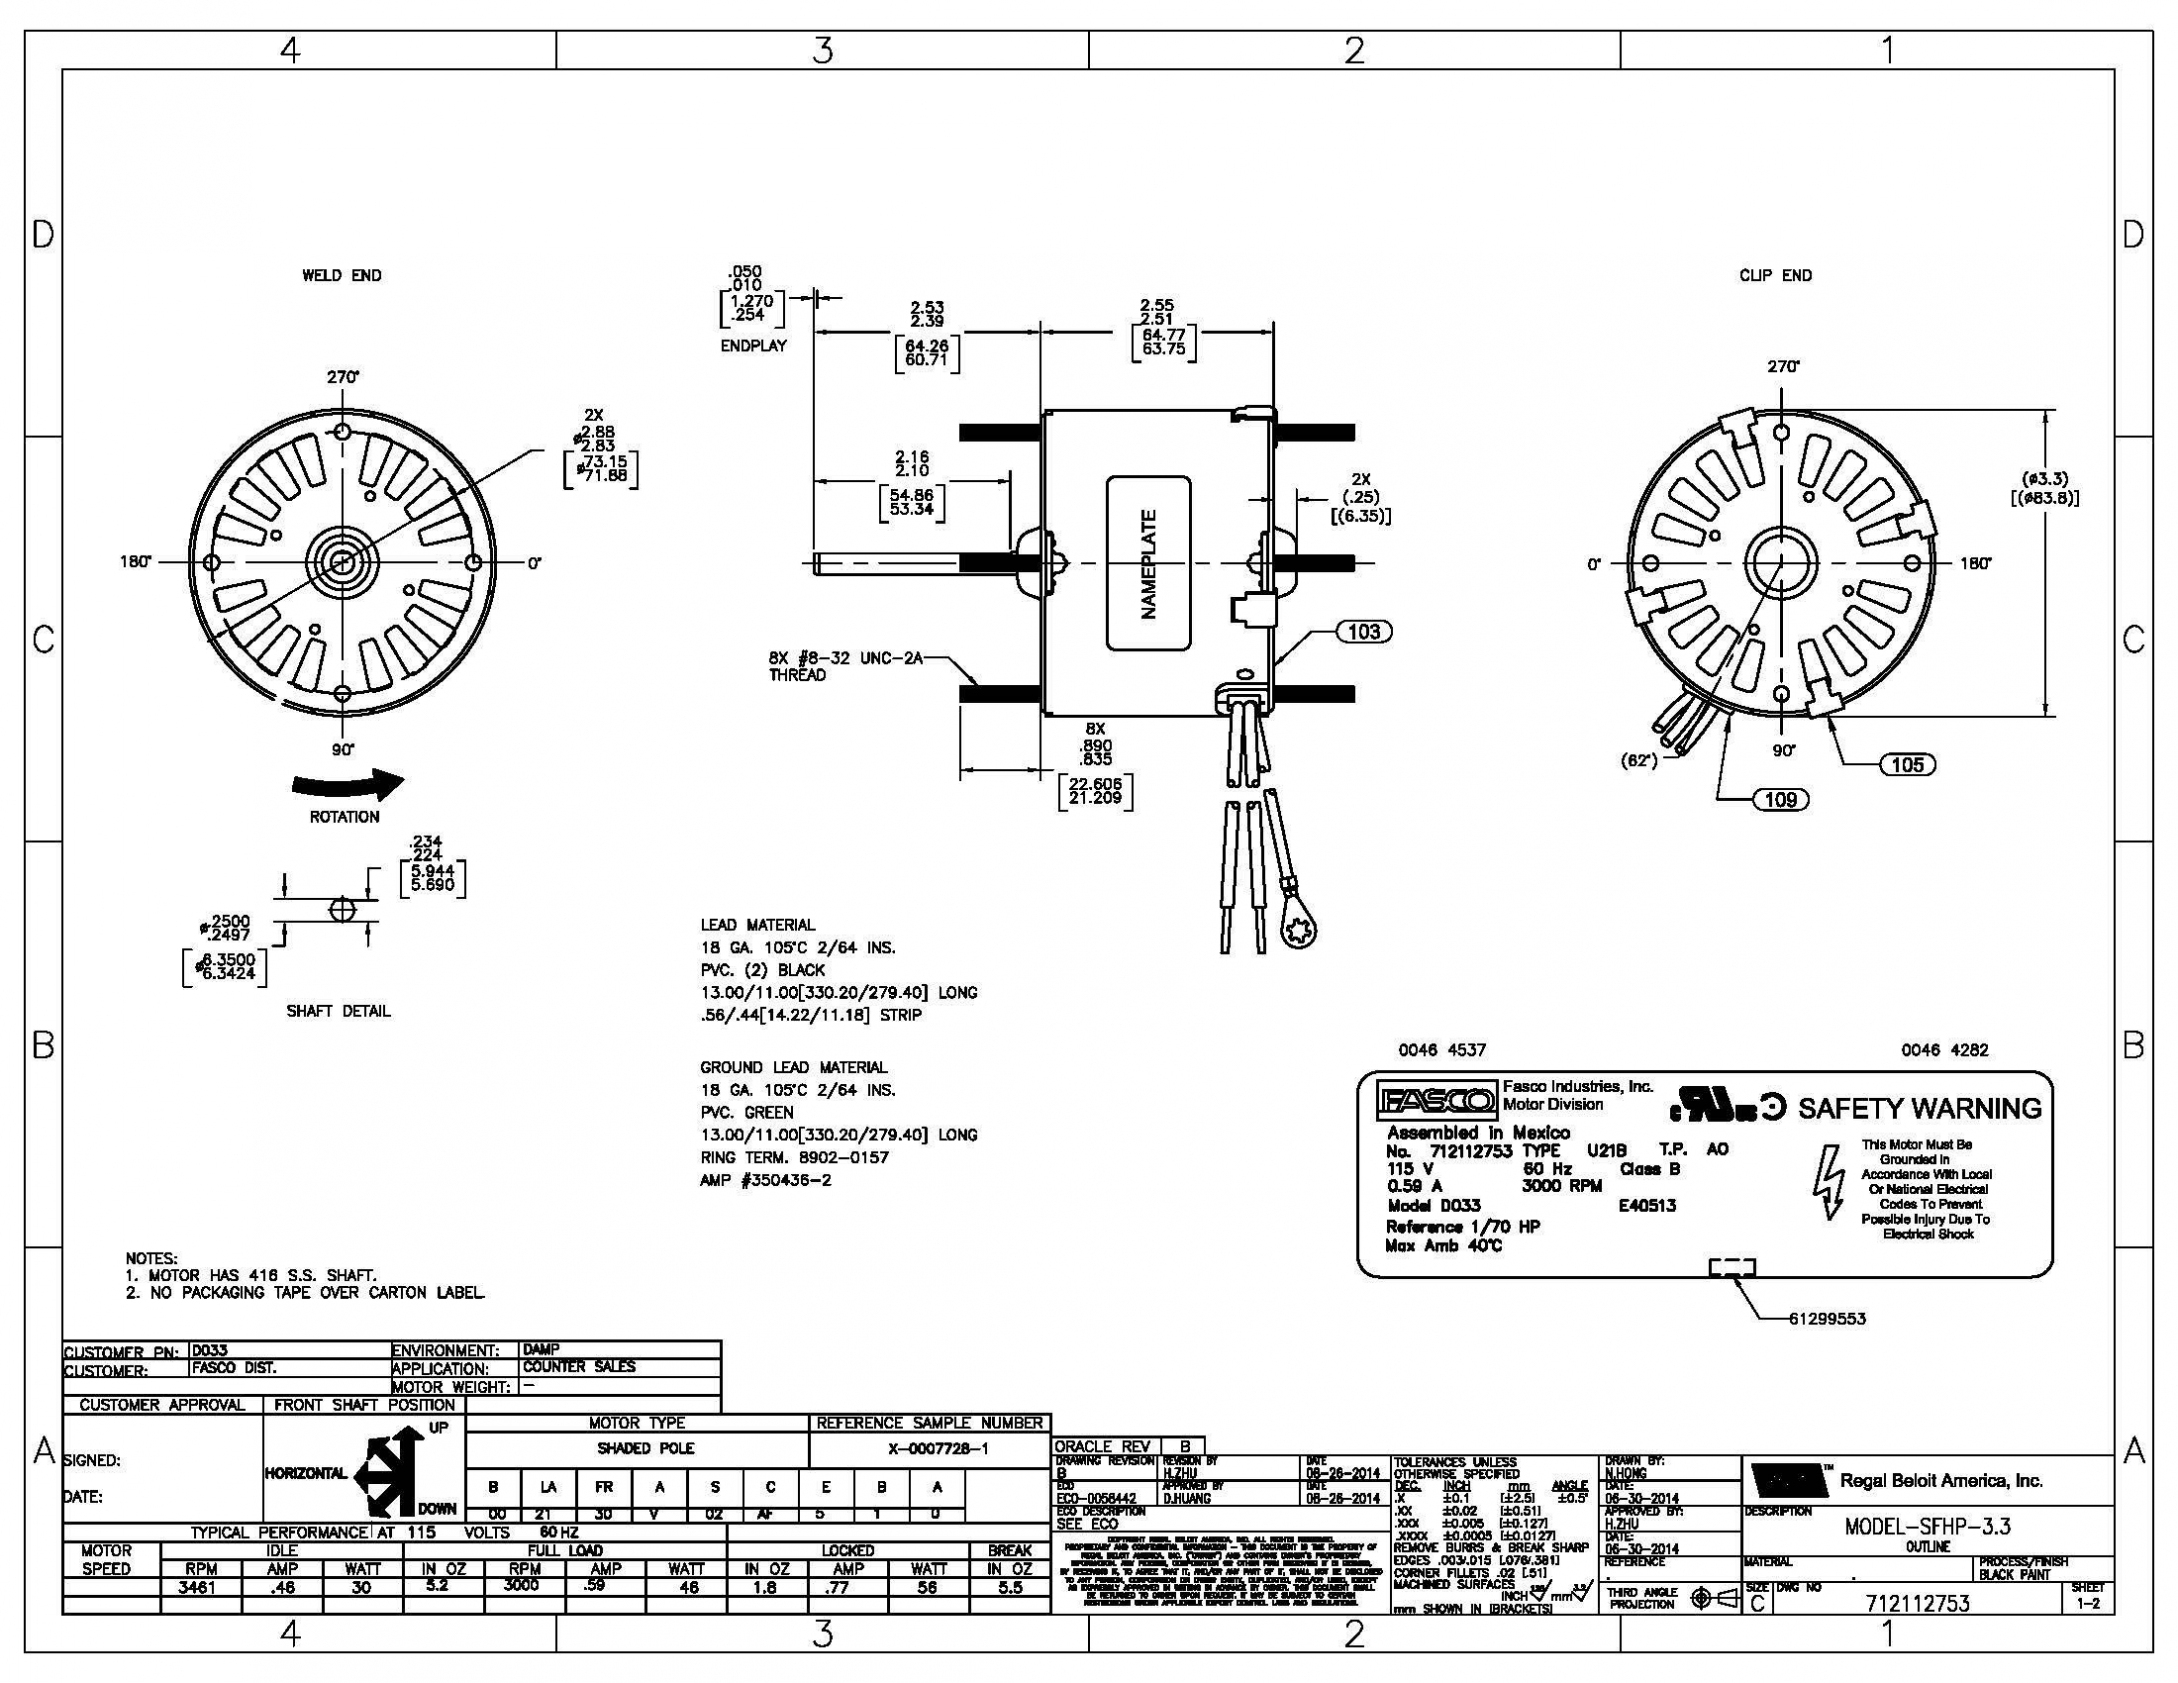 Century Electric Motor Wiring Diagram | Air American Samoa - Century Motor Wiring Diagram